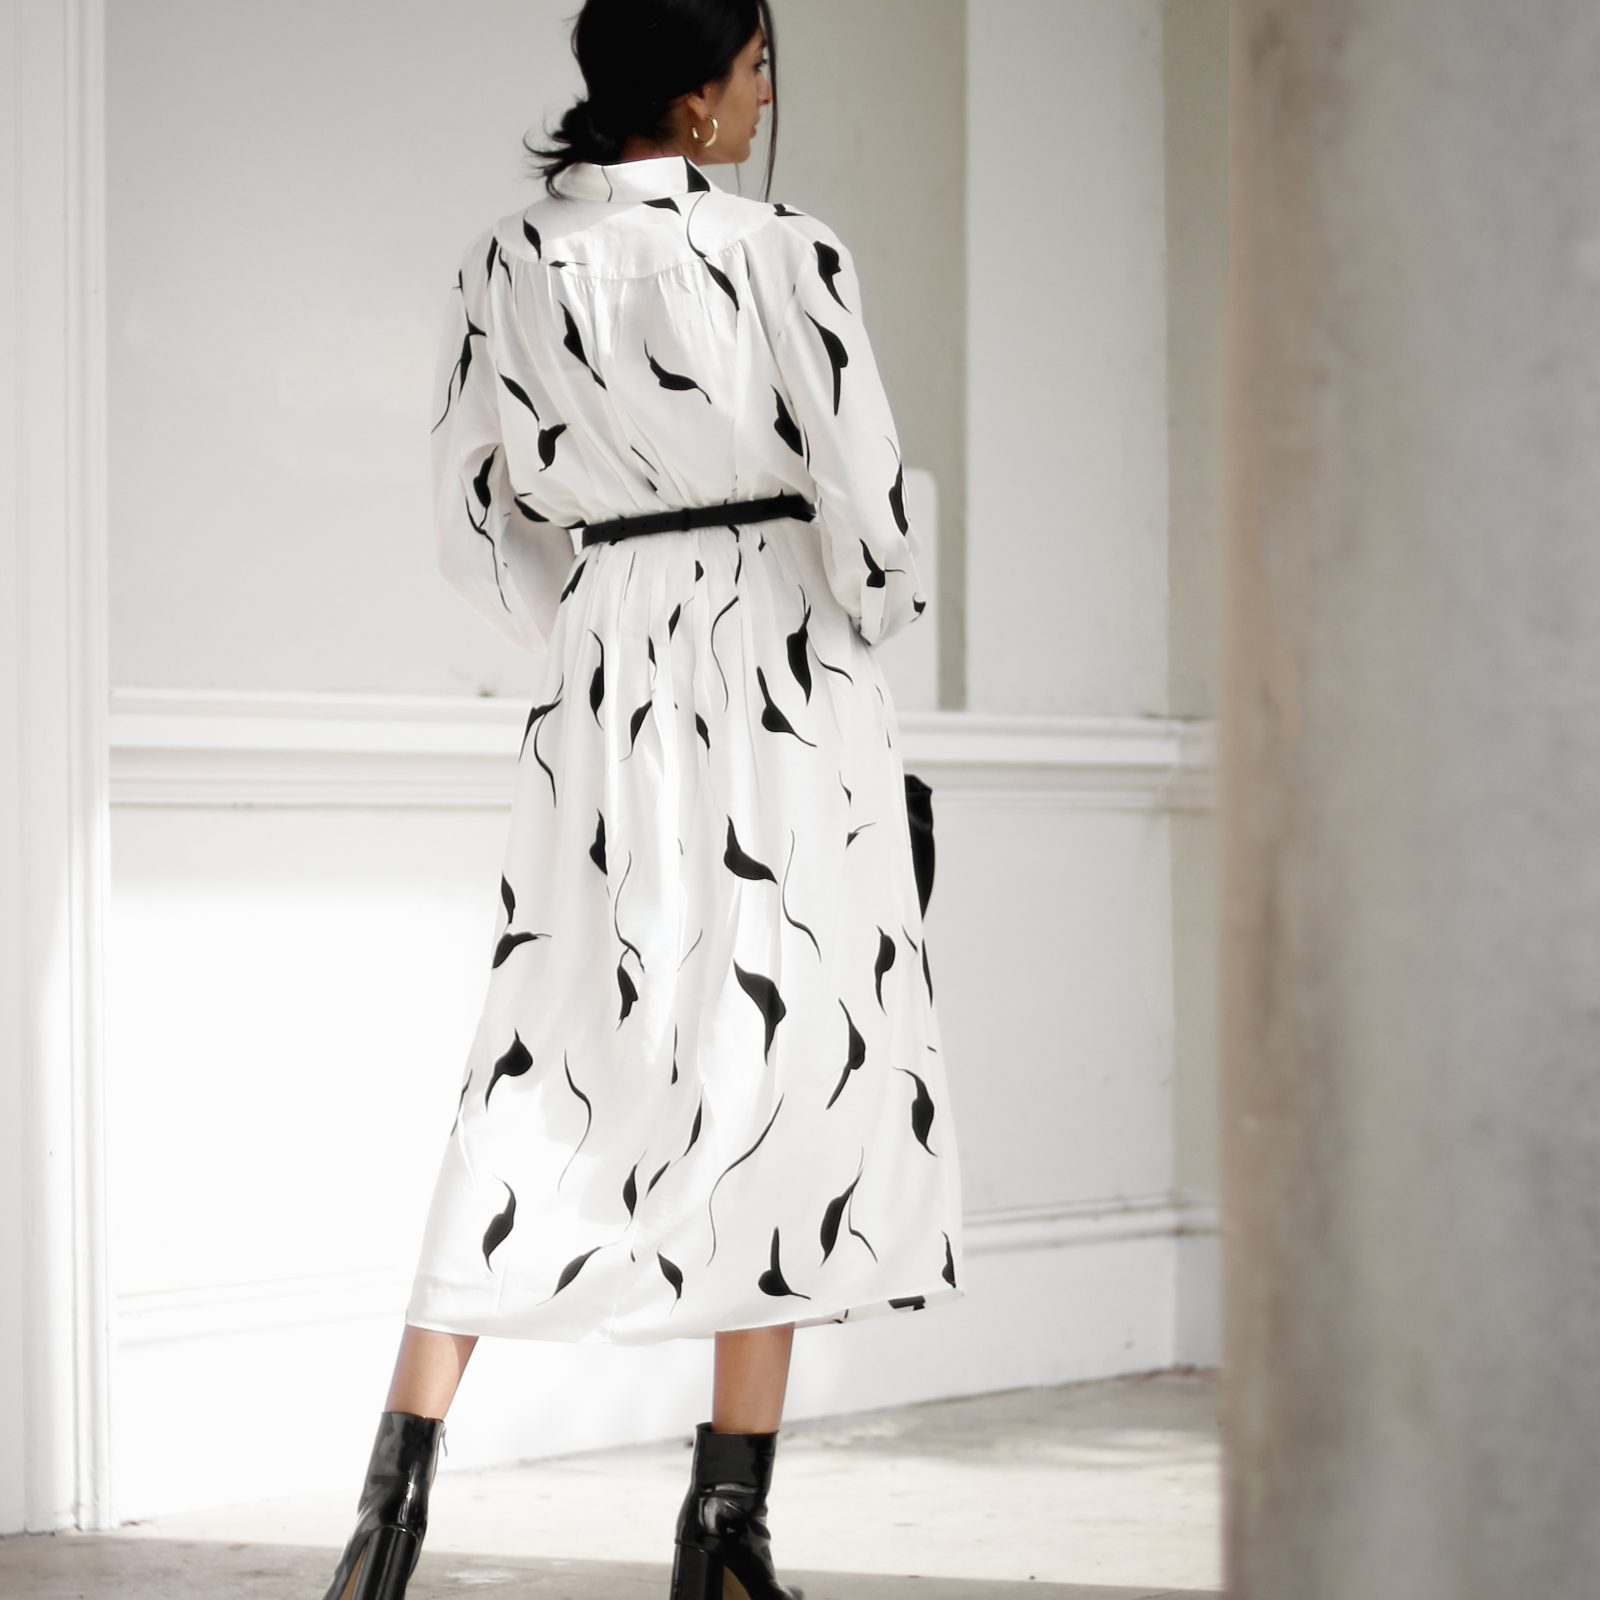 Abstract Prints & Dresses